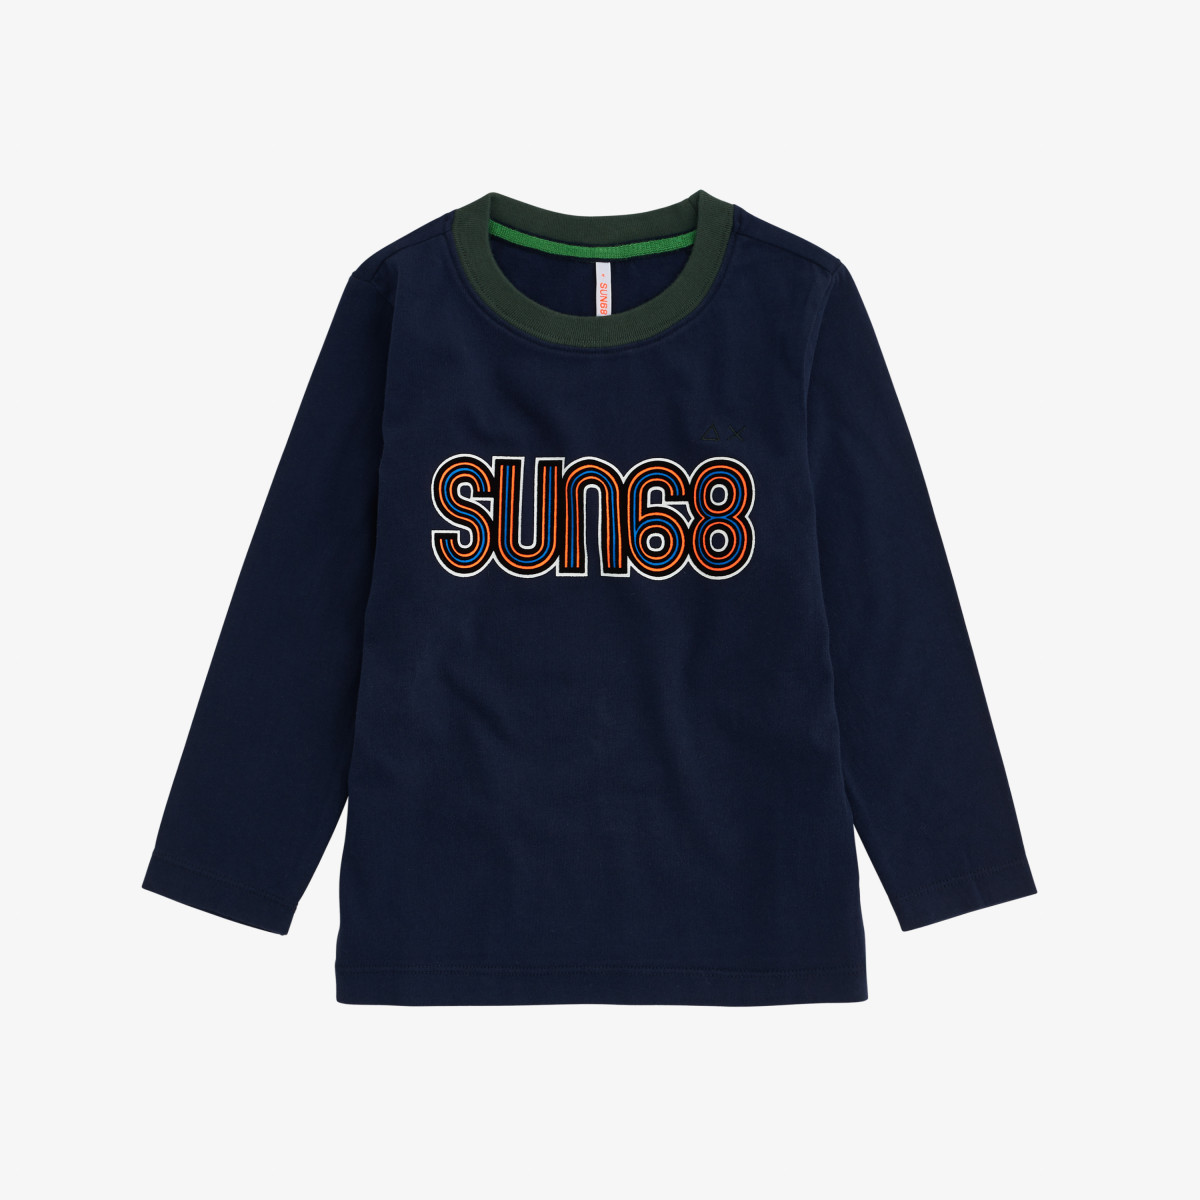 BOY'S T-SHIRT PRINT ON CHEST L/S NAVY BLUE